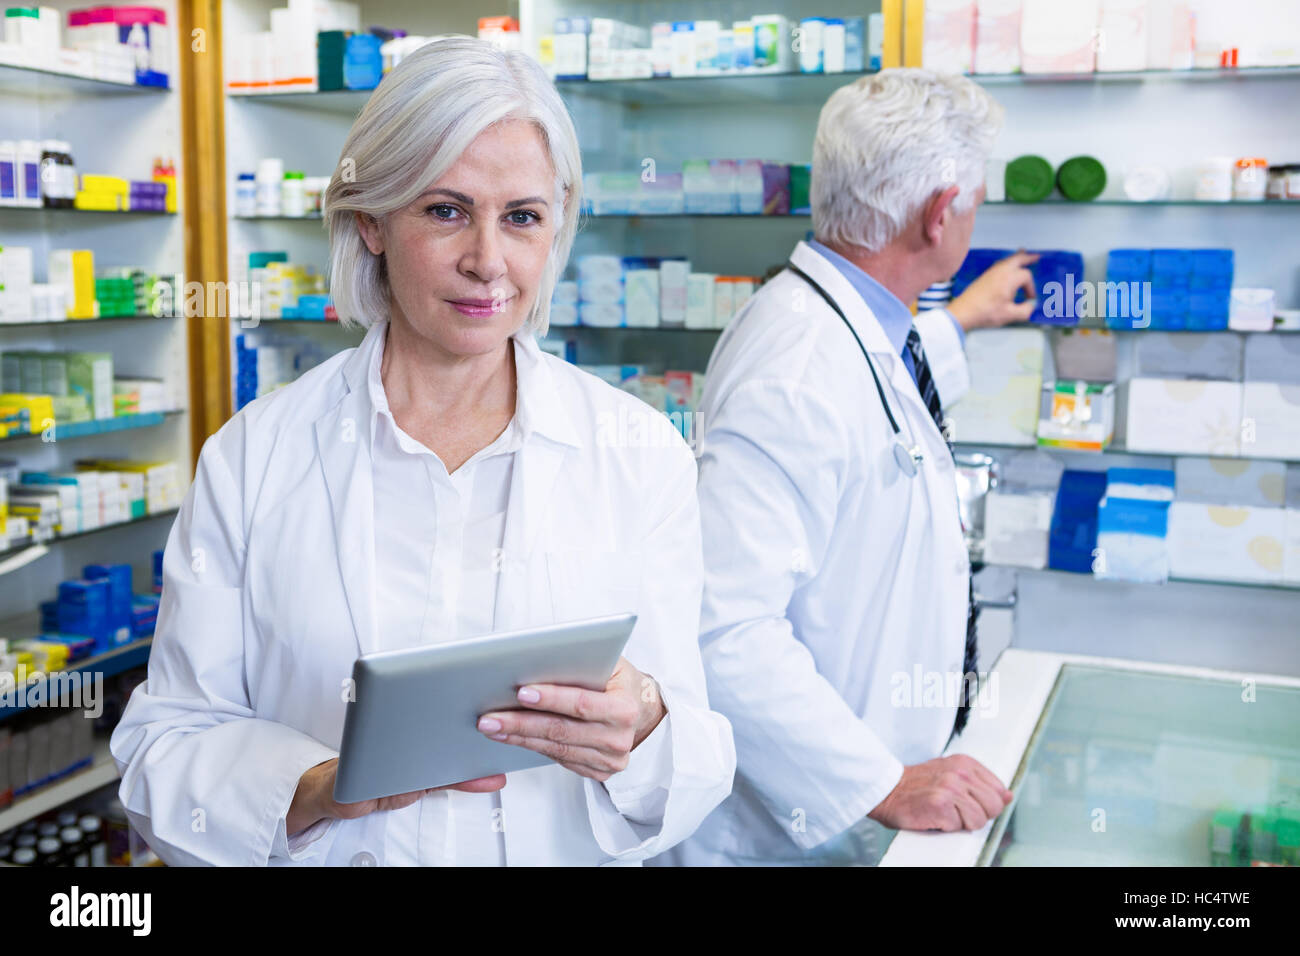 Pharmacist using digital tablet and co-worker checking medicines - Stock Image